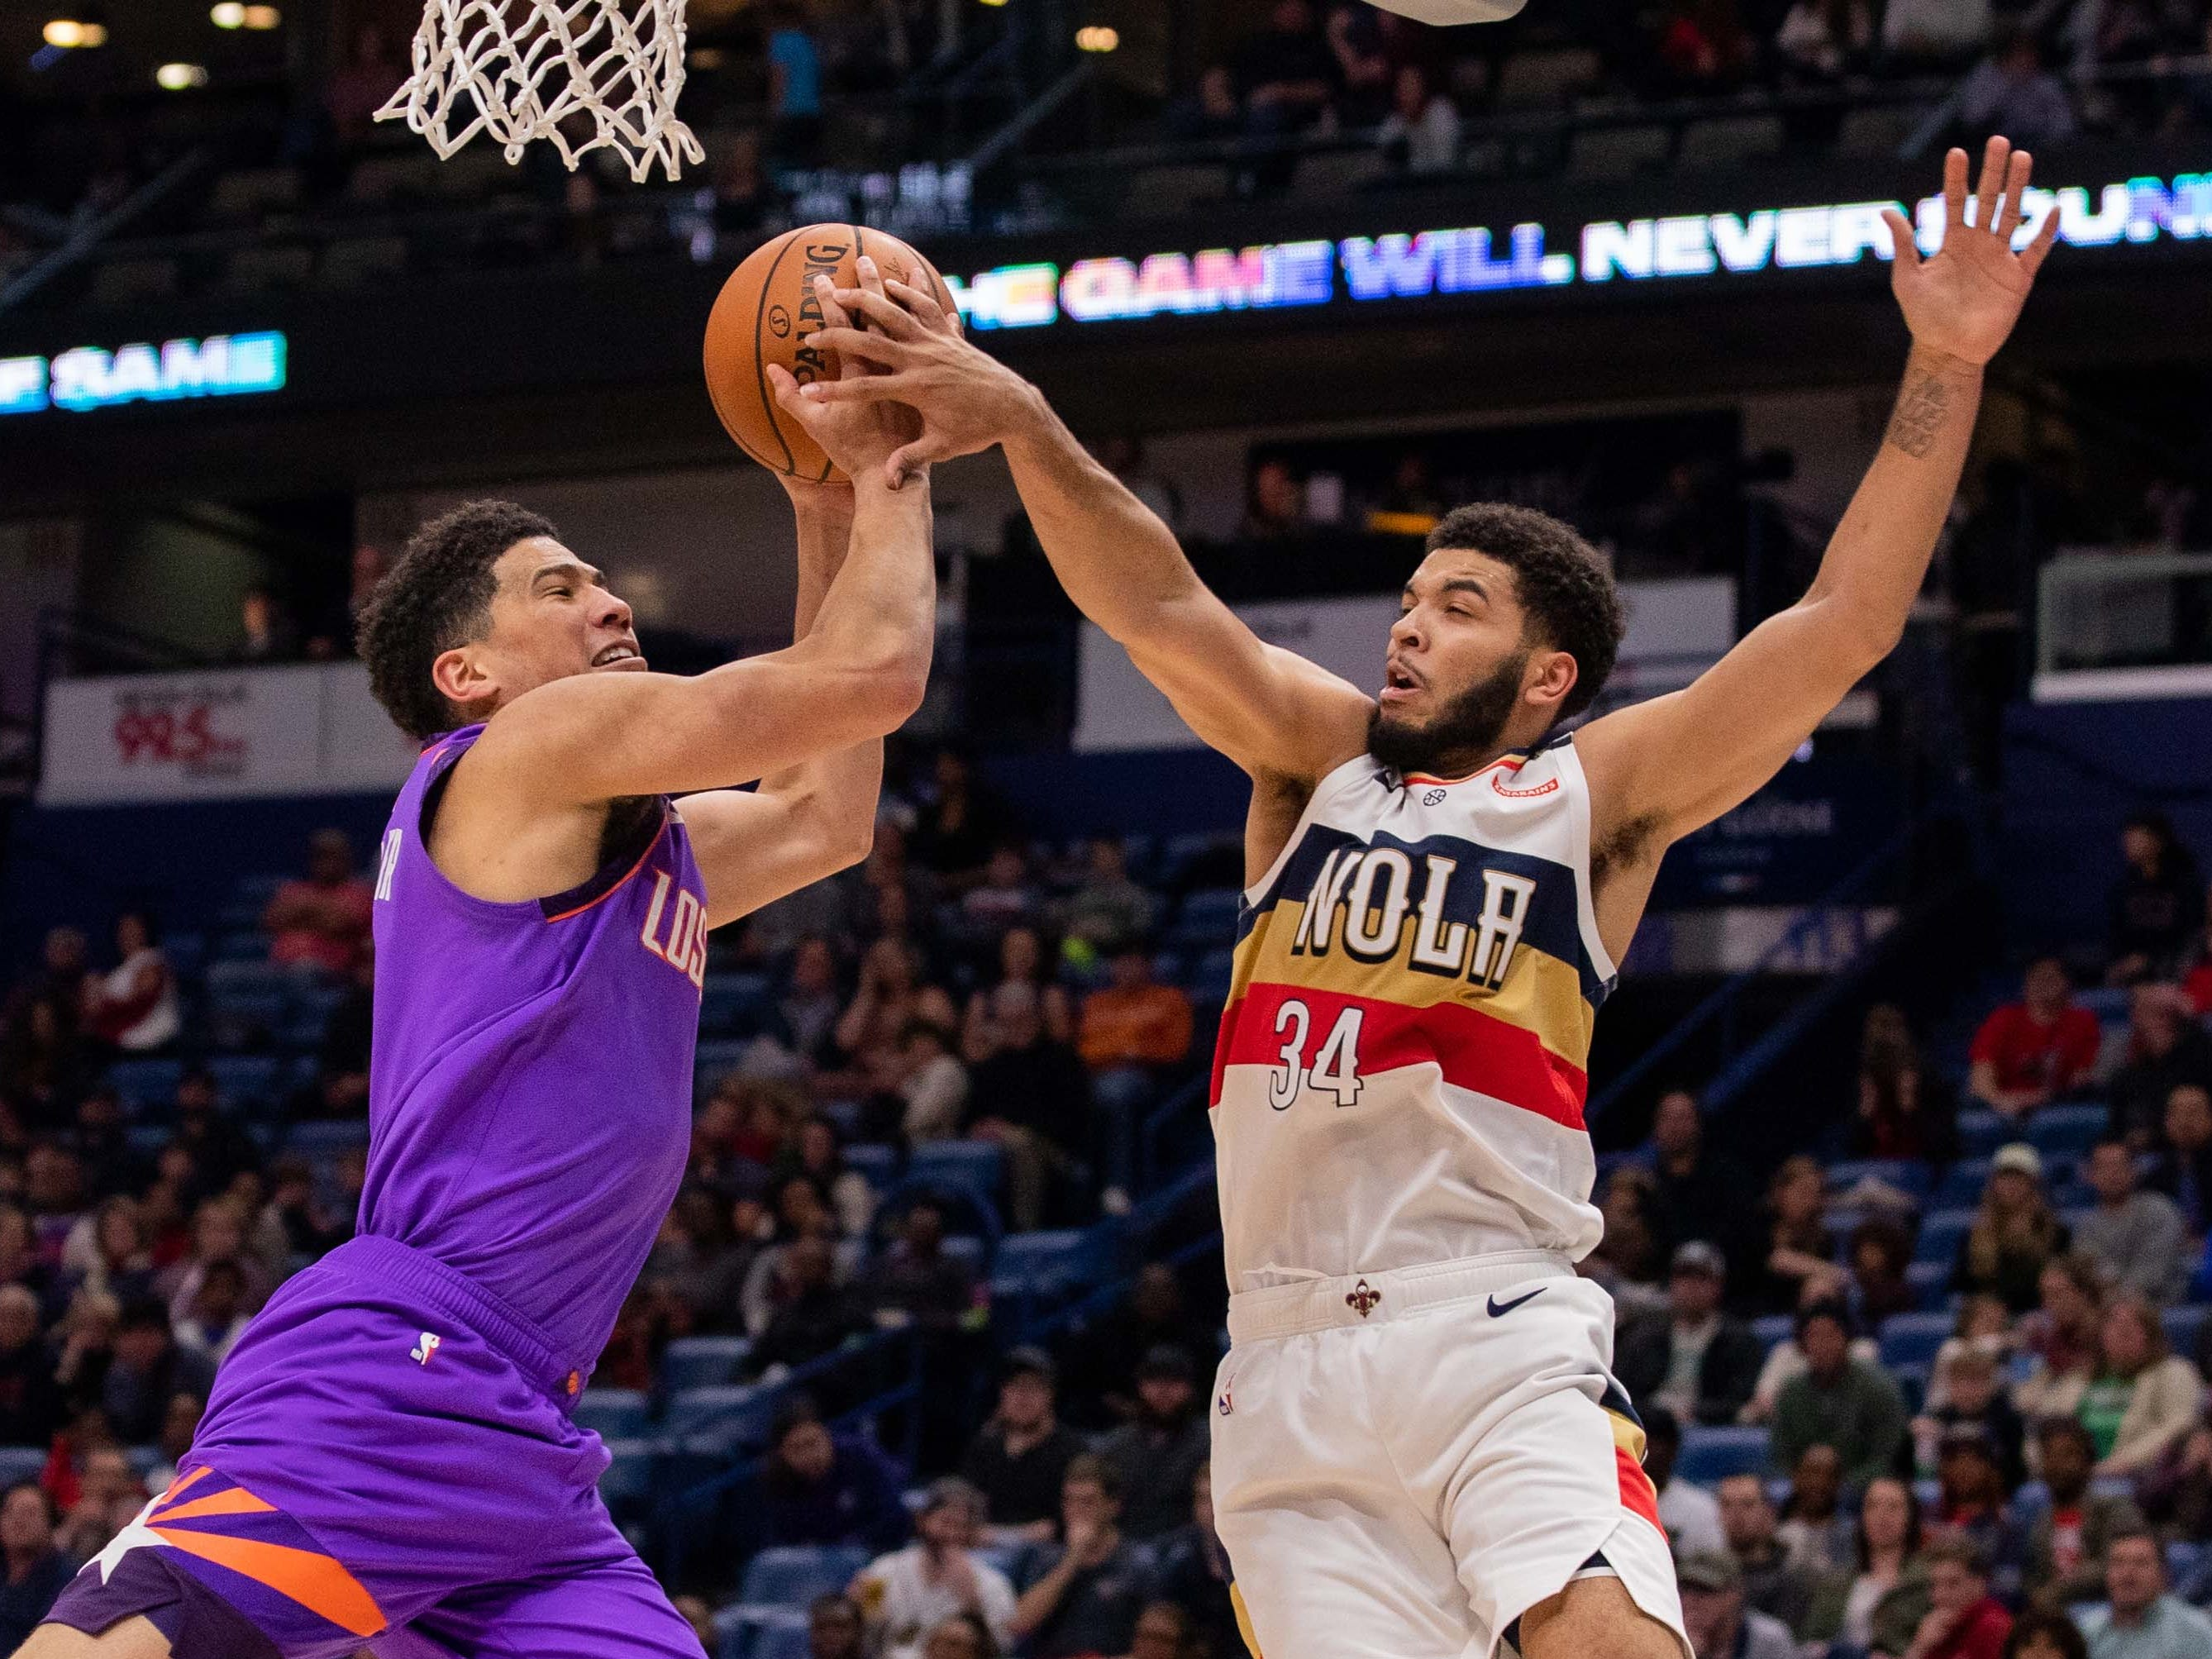 Mar 16, 2019; New Orleans, LA, USA; Phoenix Suns guard Devin Booker (1) is fouled going to the basket by New Orleans Pelicans guard Kenrich Williams (34) during the first half at Smoothie King Center.